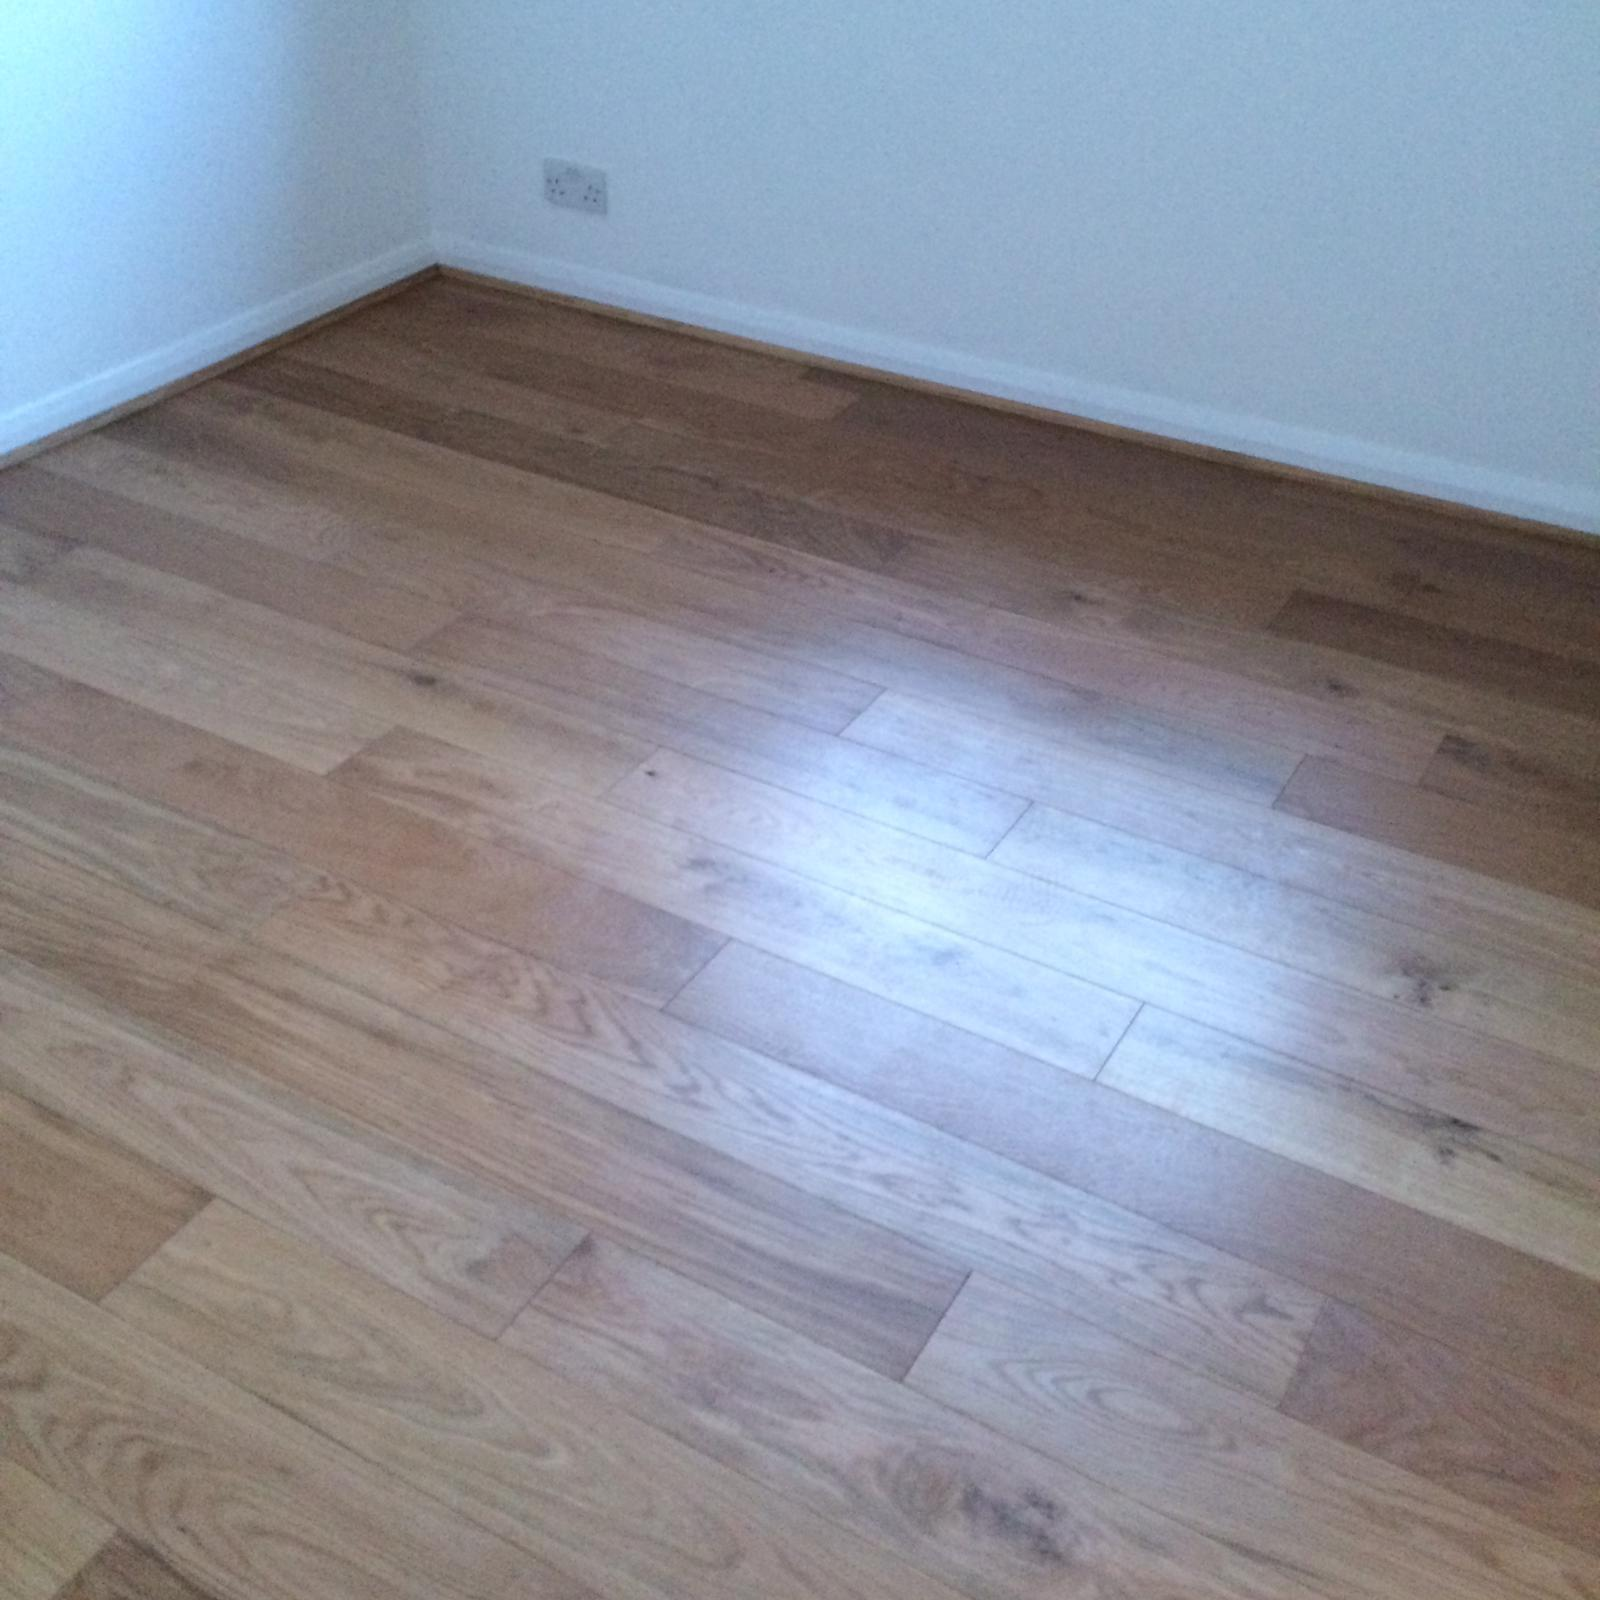 Furlong 5816 Wood Flooring 2